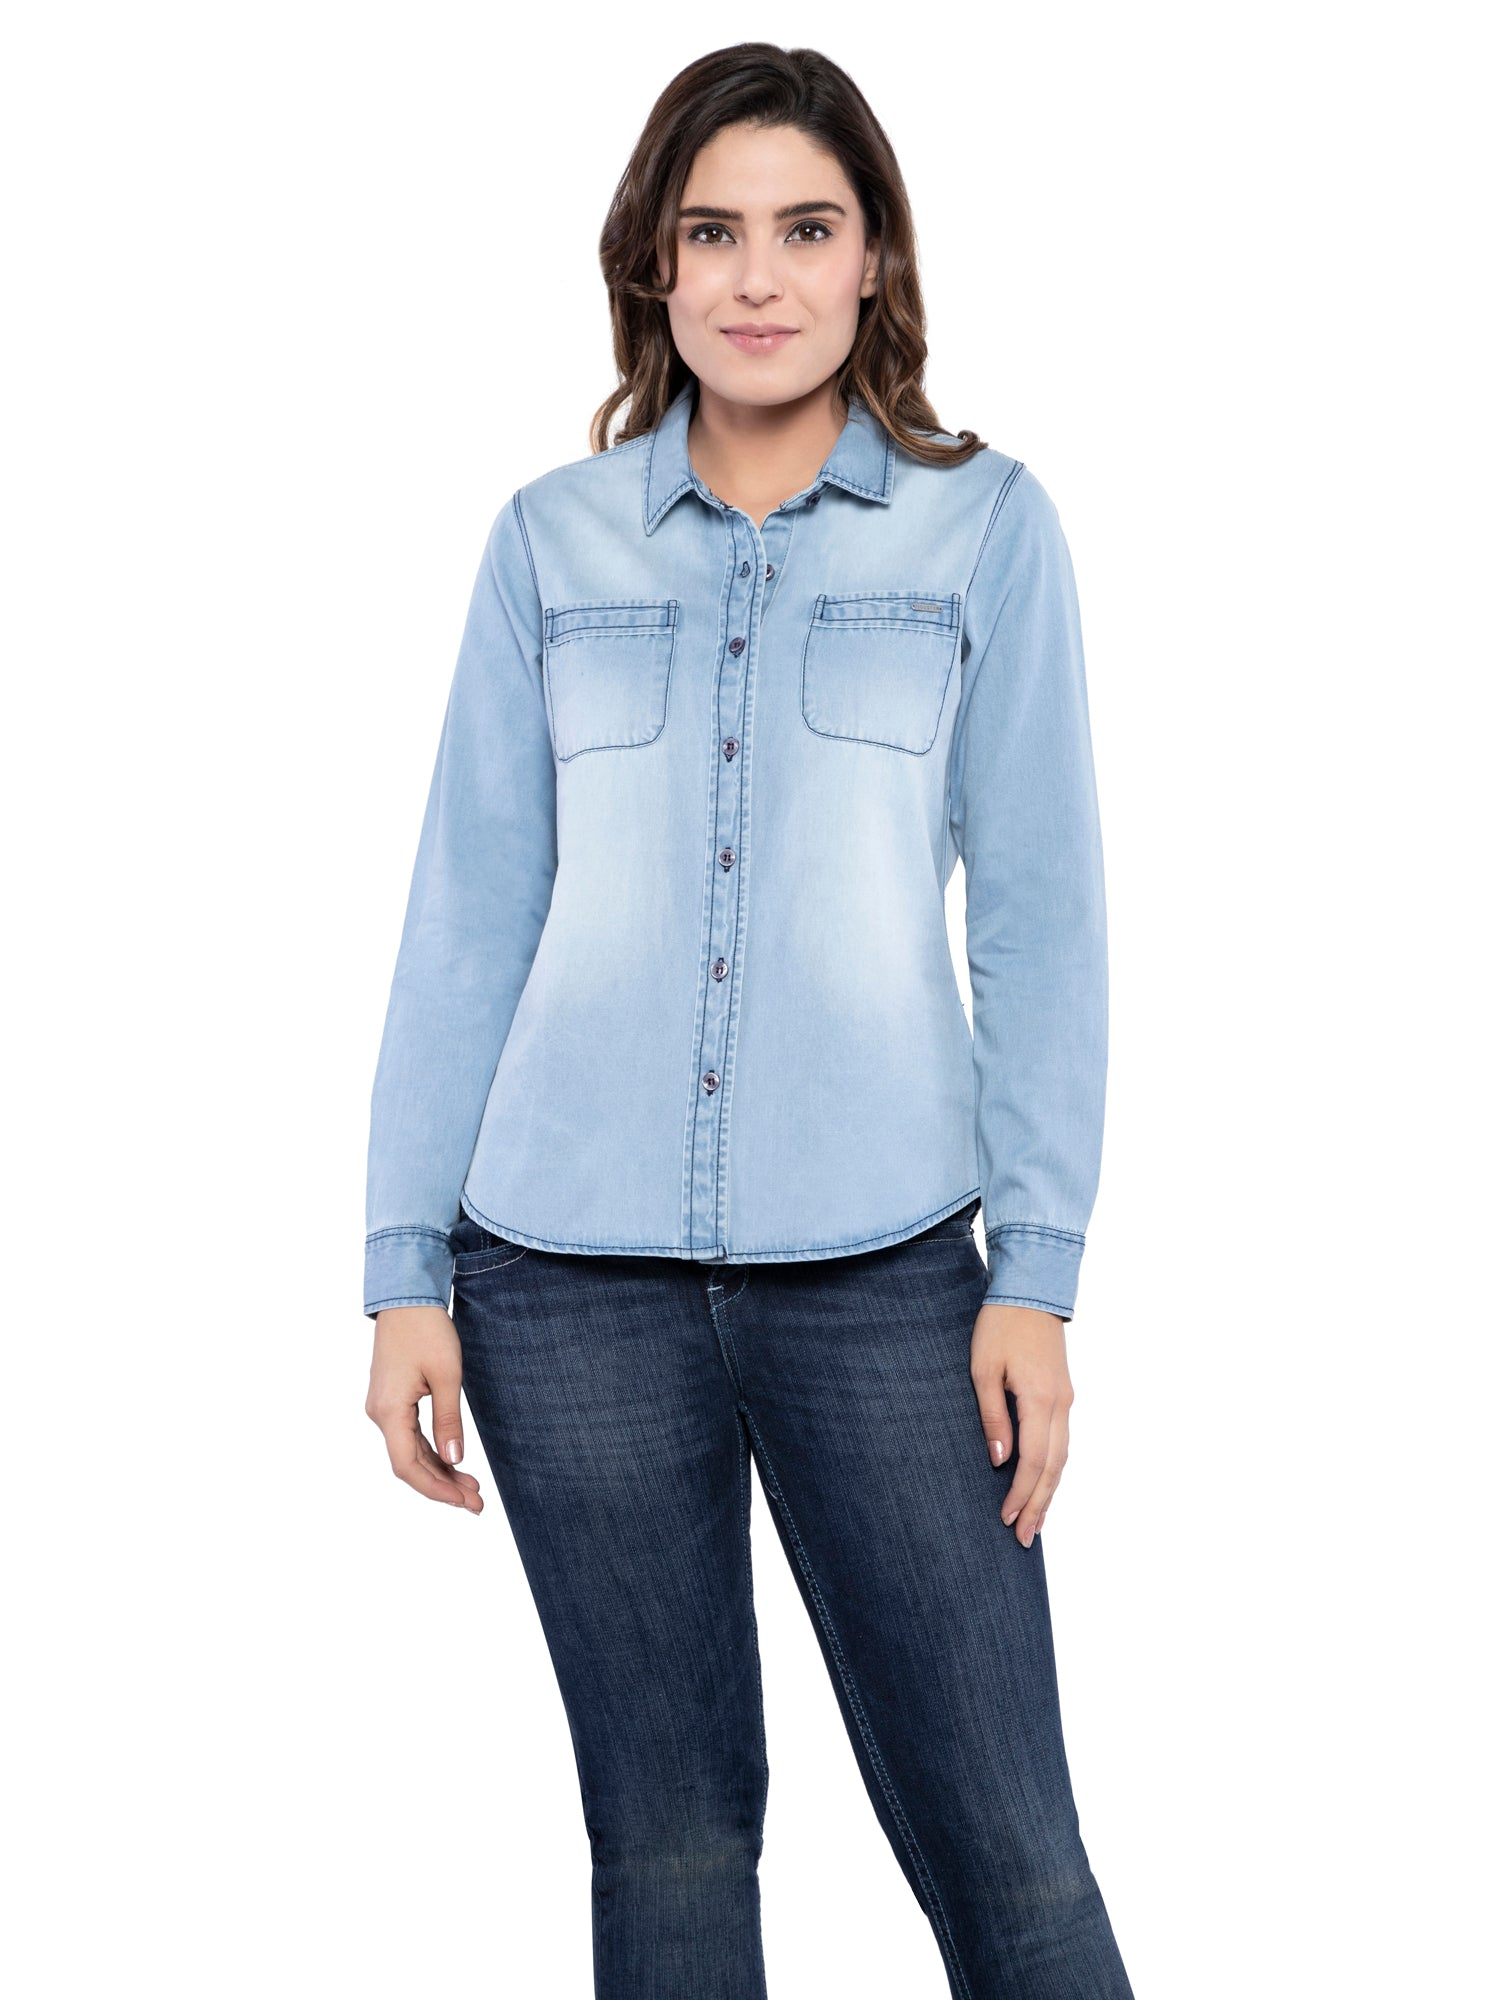 Ficuster Women Light Blue Denim Casual Shirt